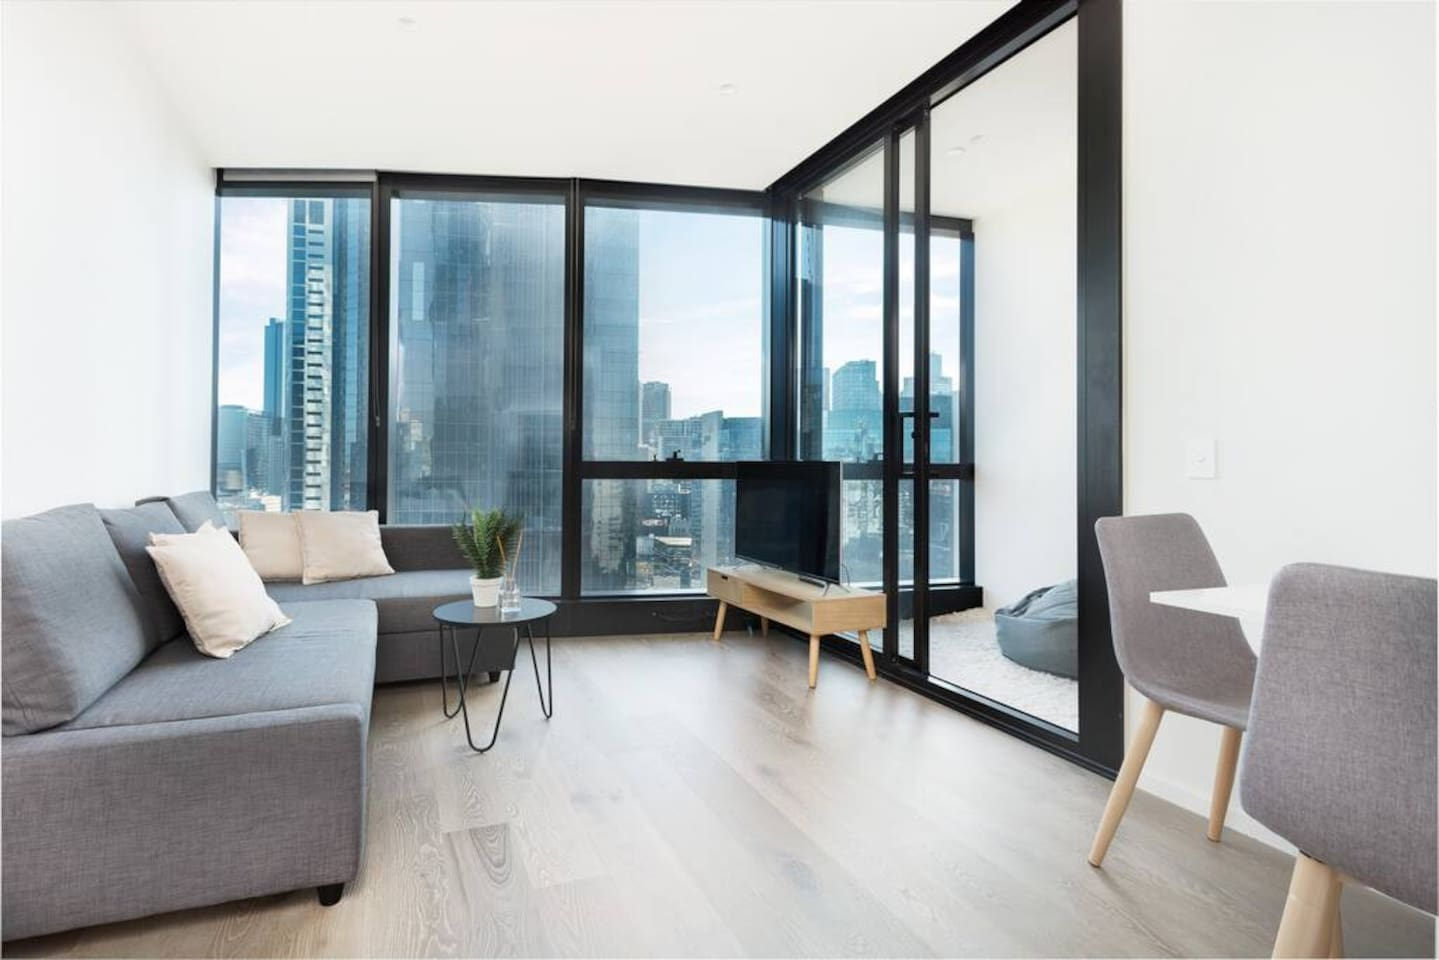 Whether it's with some movies on the flat screen or with a book and a cup of tea, unwind in this cosy living area with the view of Melbourne's city right outside the window.